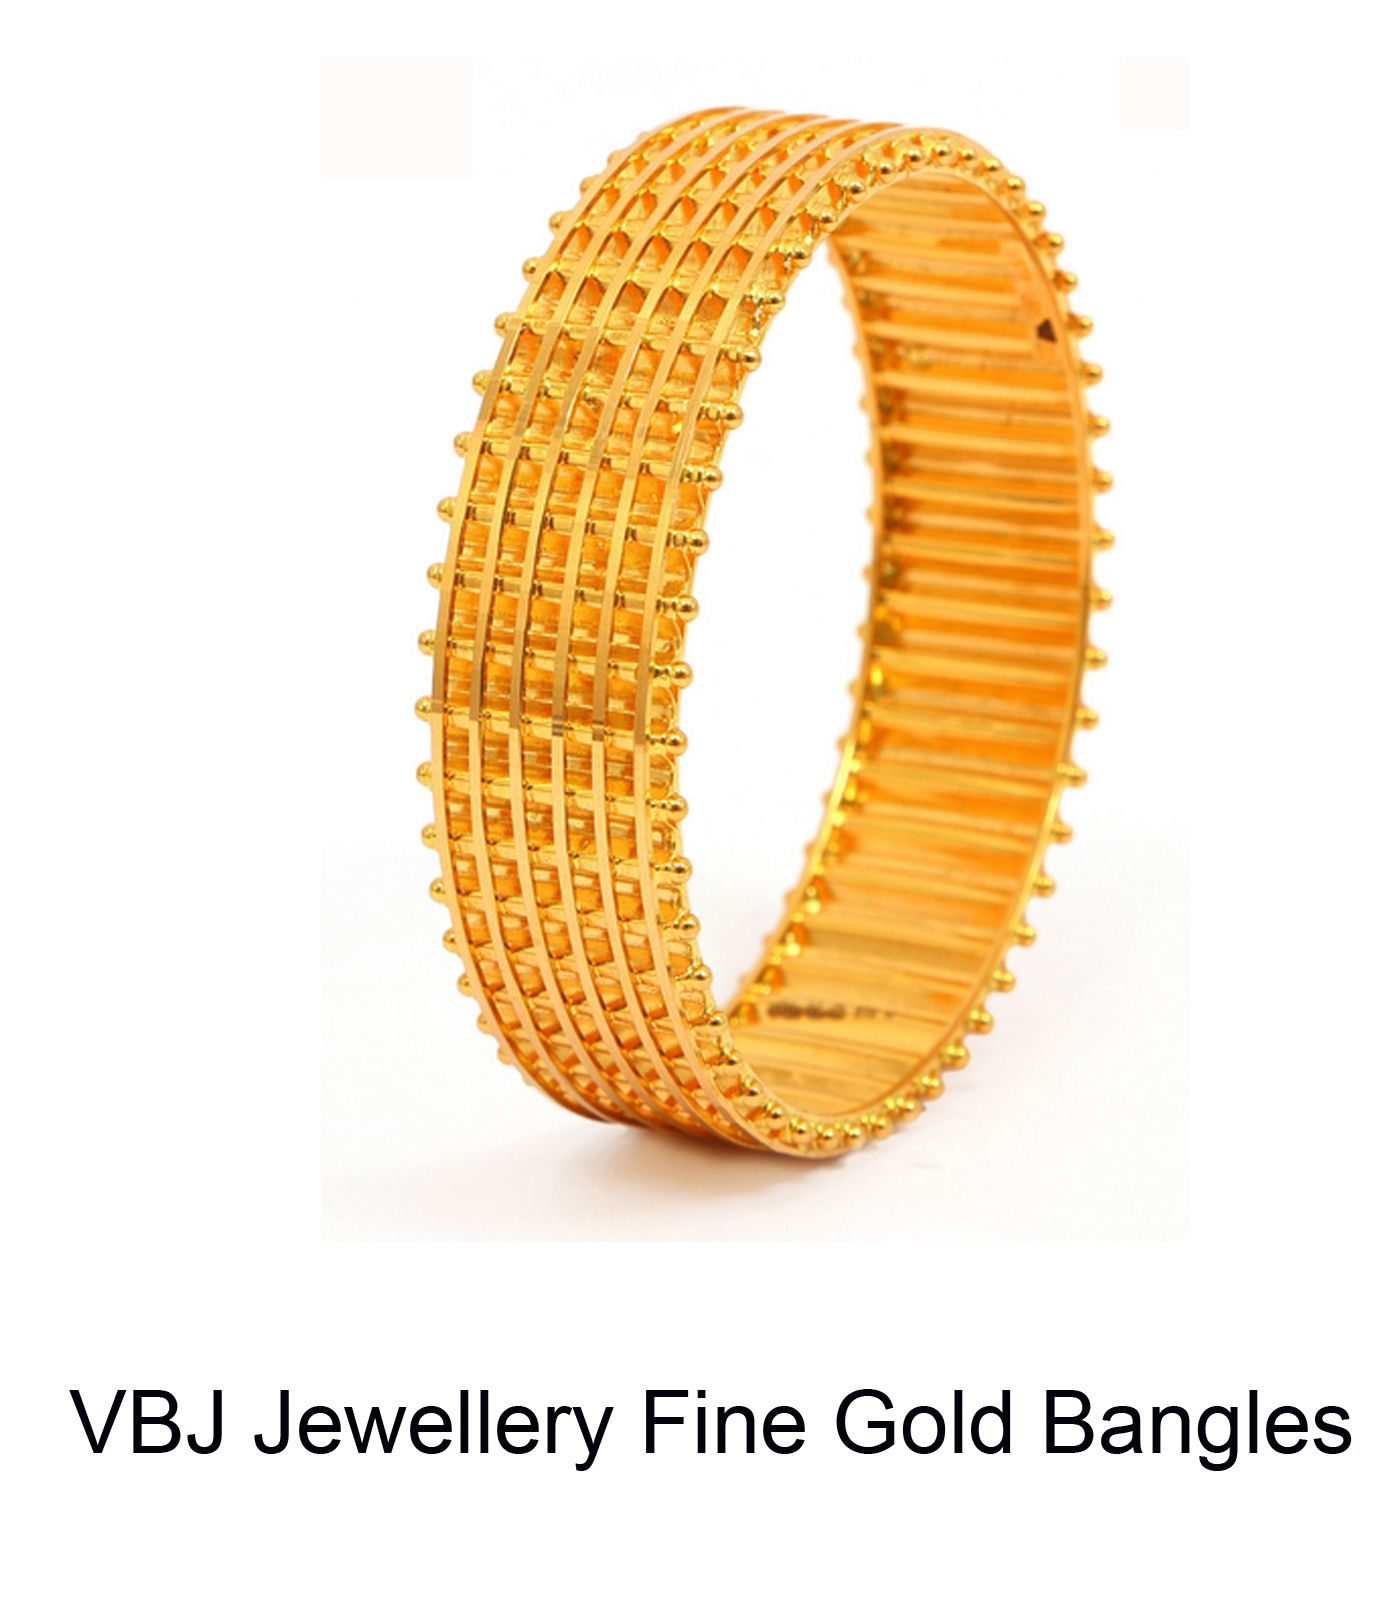 Image from http://www.frodoe.co.in/products/Jewellery/VBJ ...